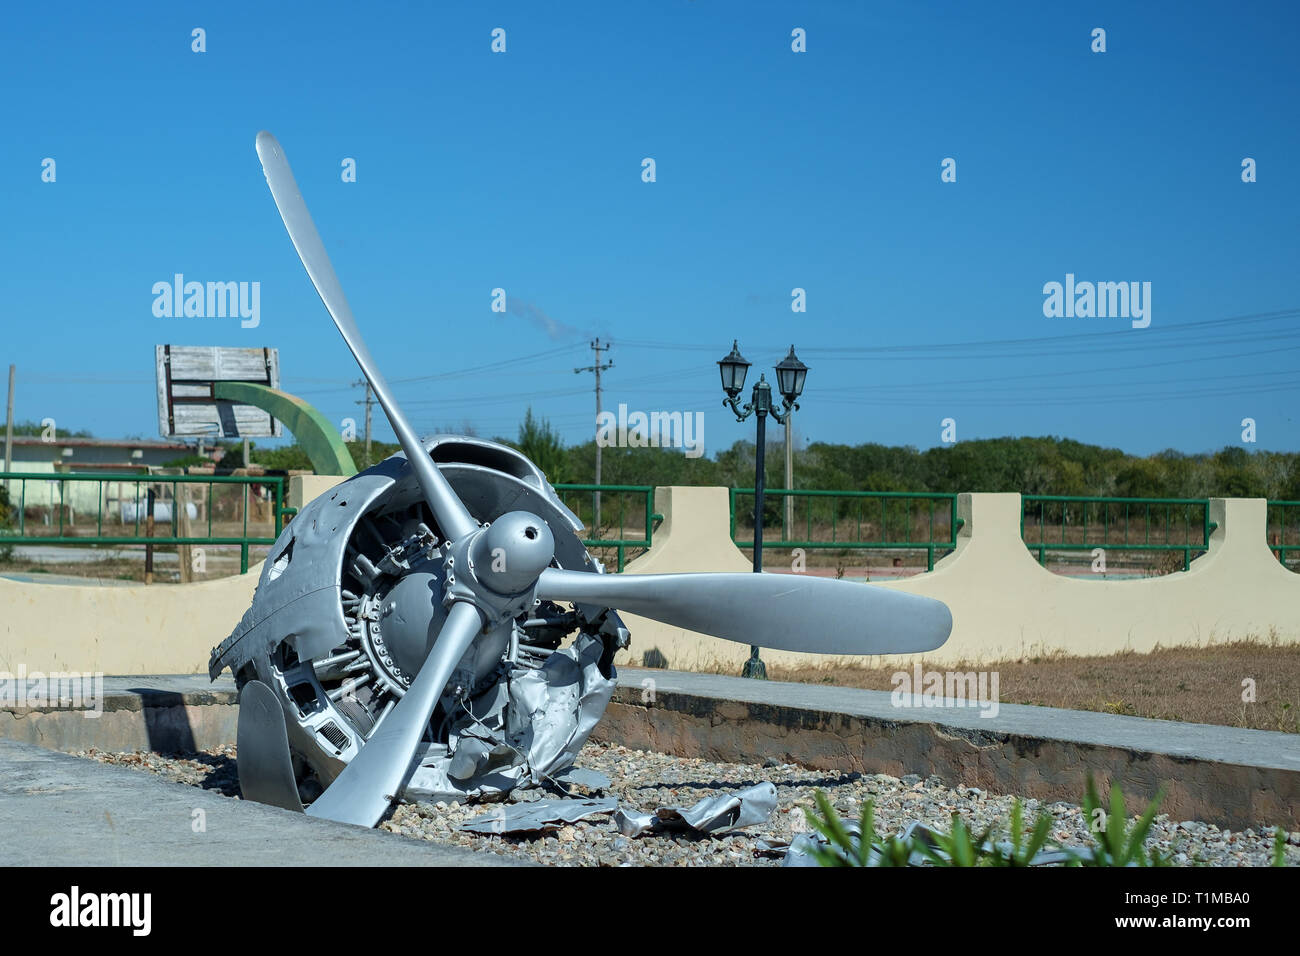 Wrecked aircraft engine and propeller at the Giron Museum, Cuba - Stock Image